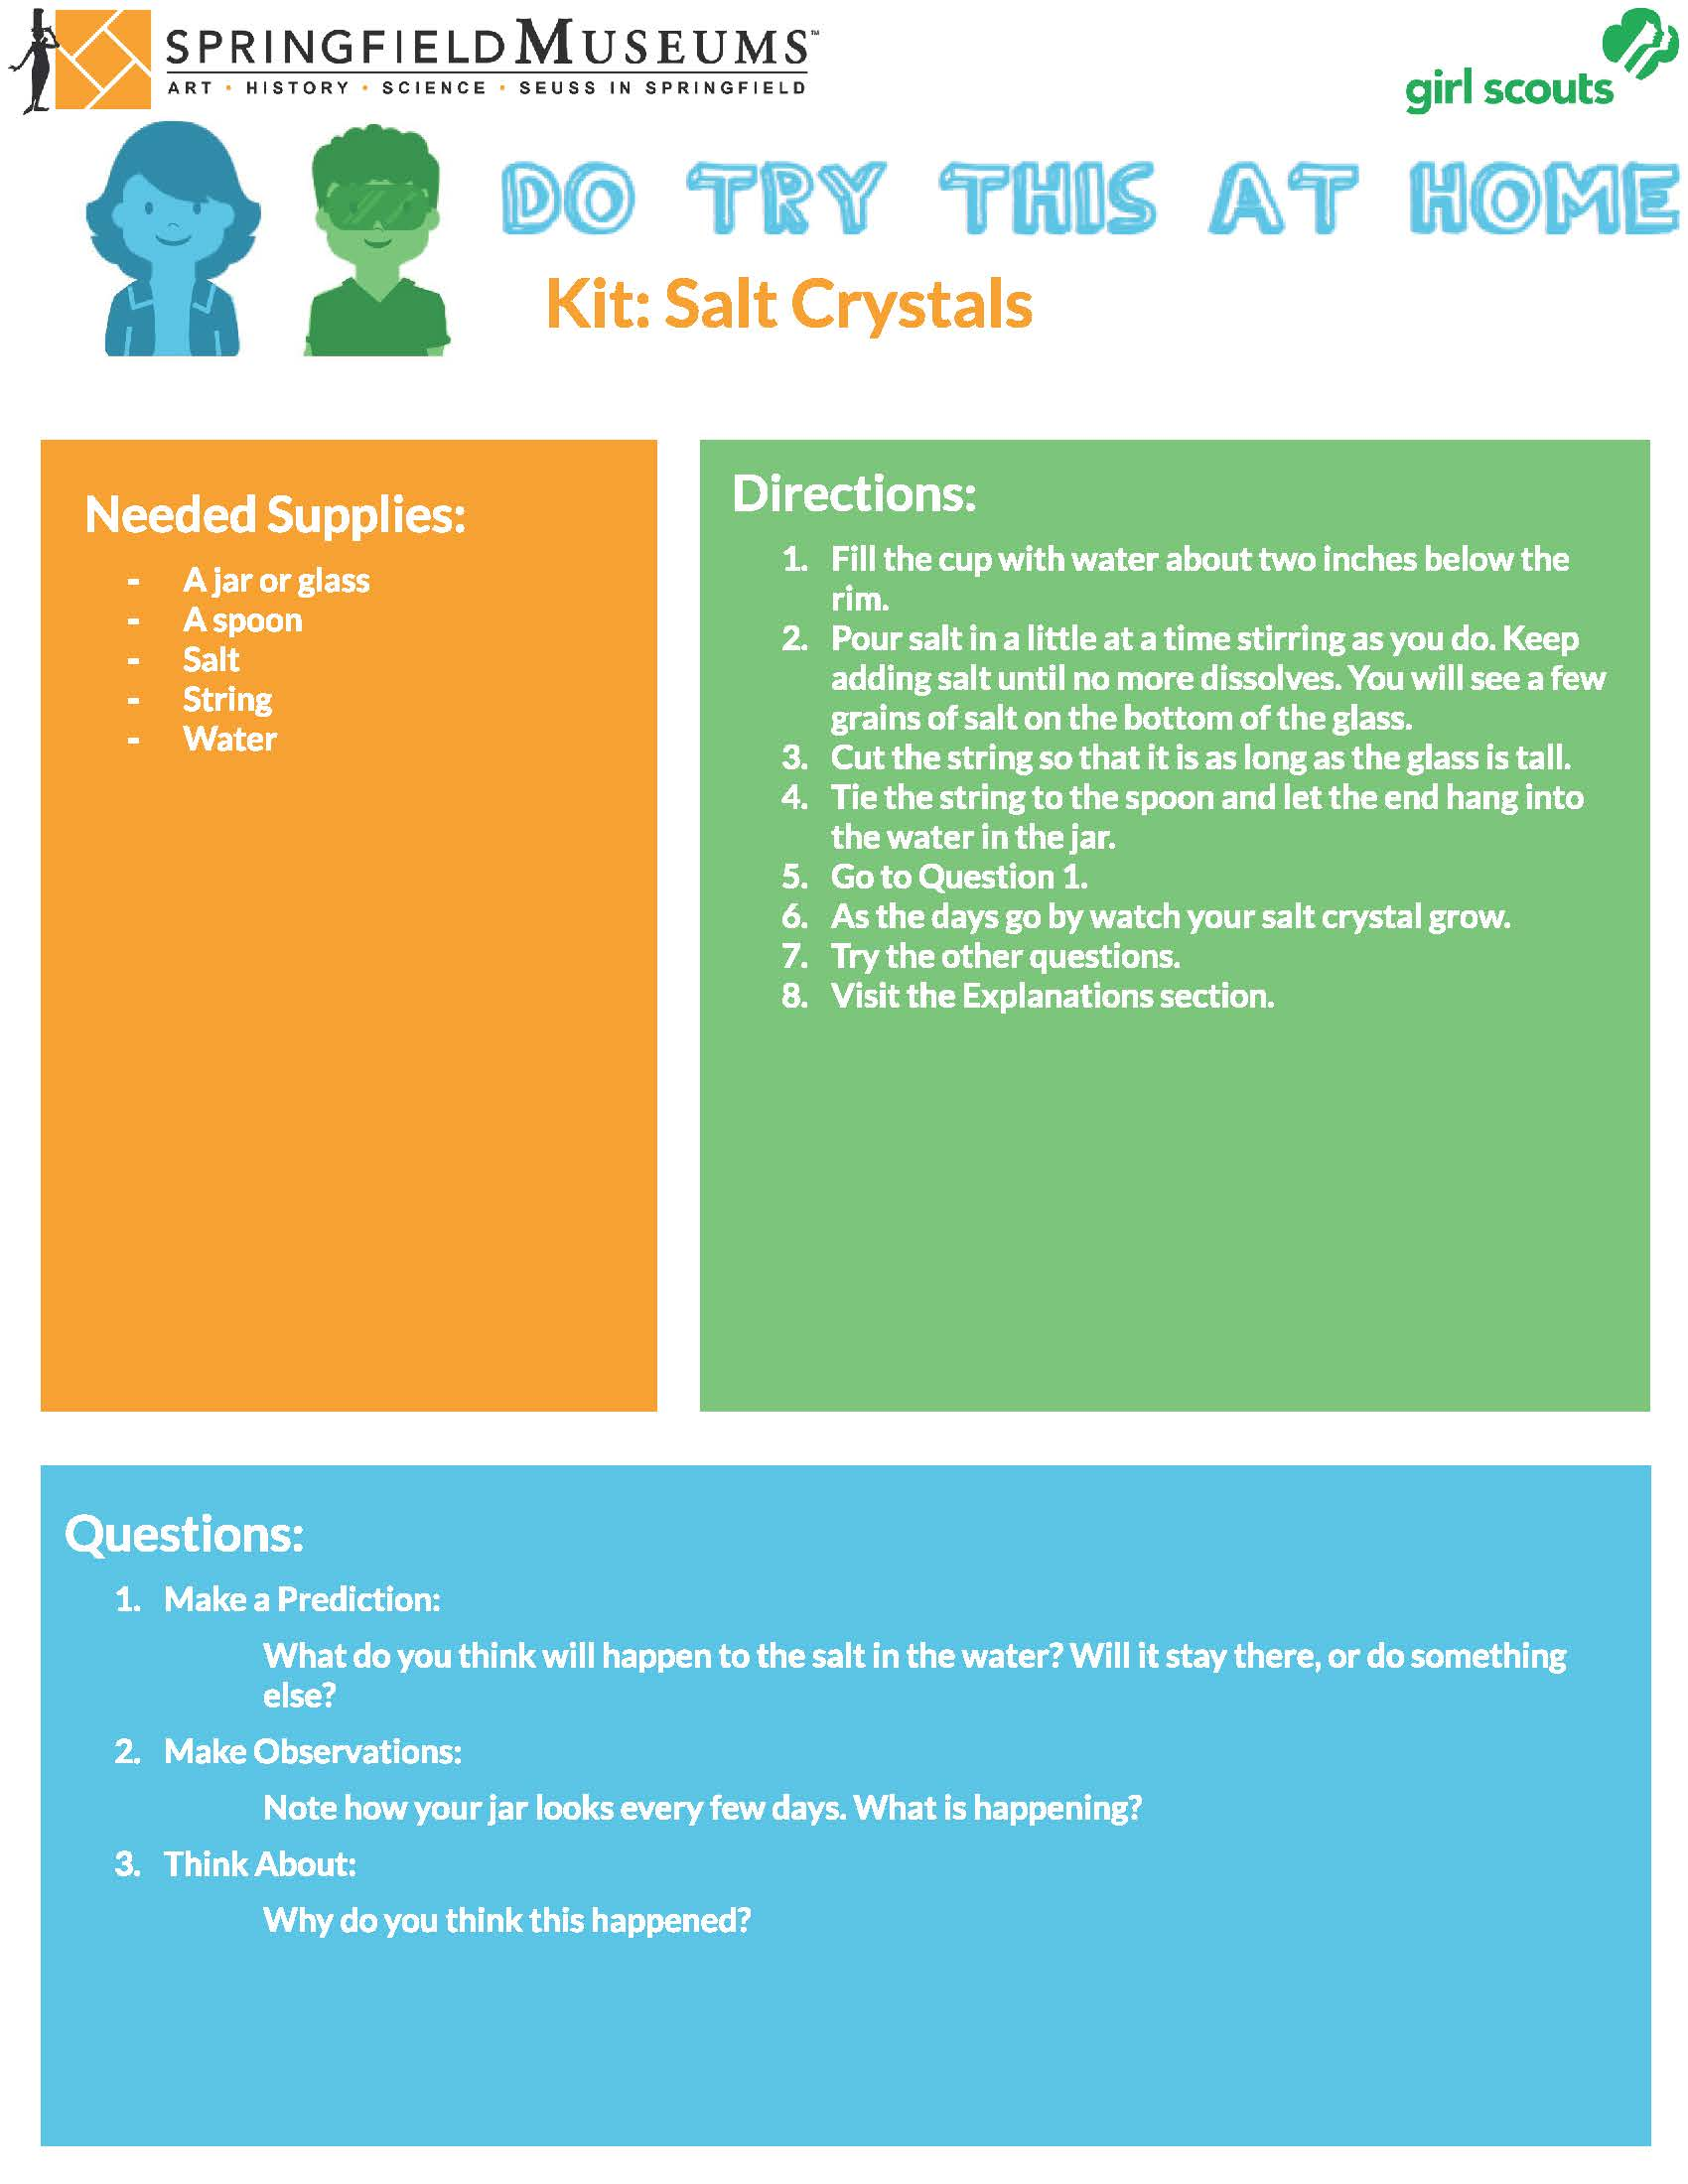 Do Try This At Home Kit: Salt Crystals